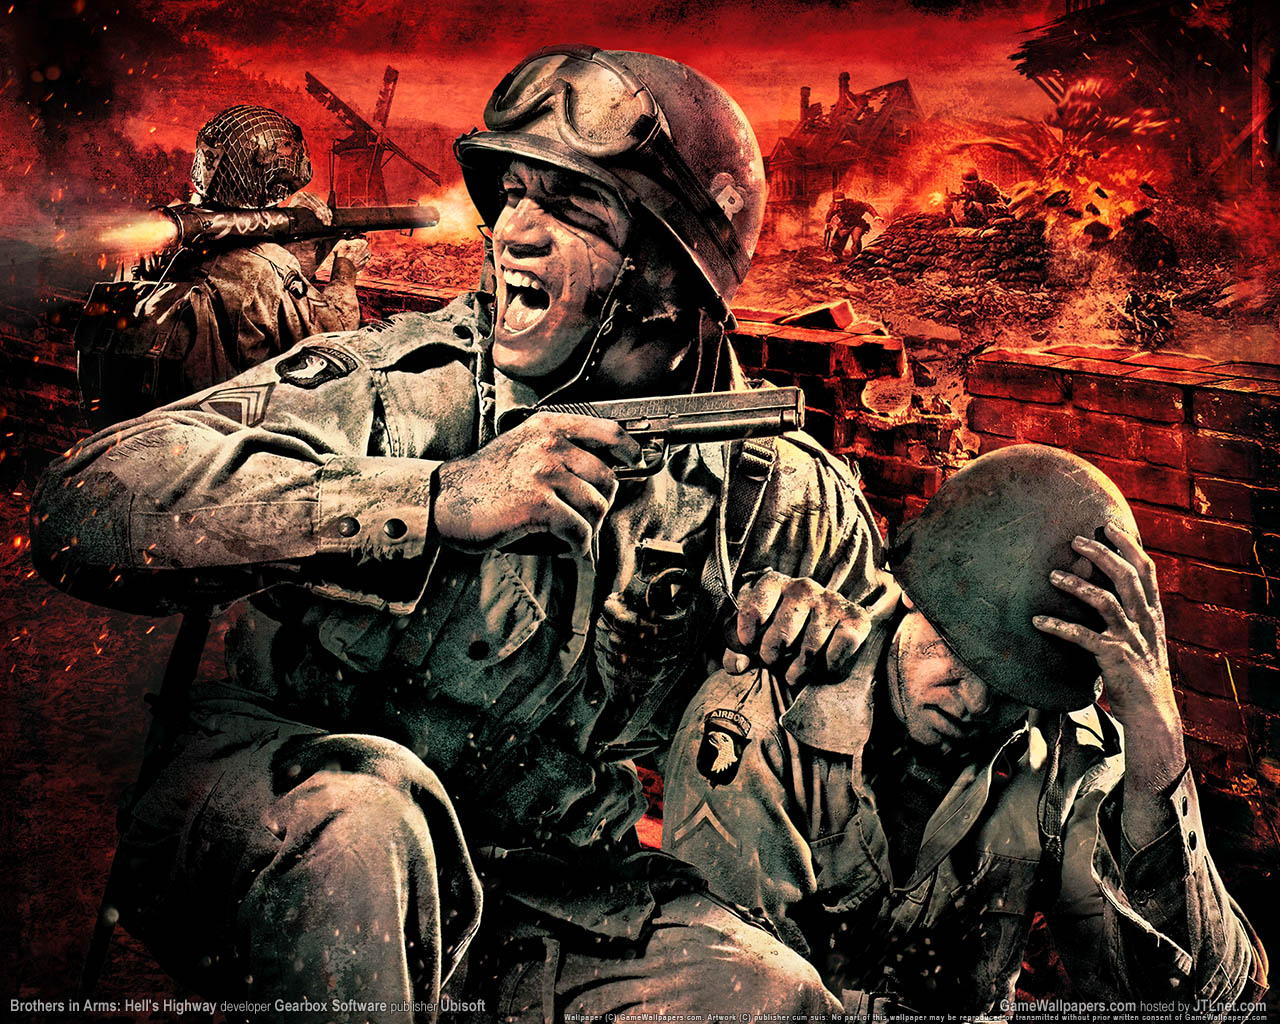 photo brothers in arms brothers in arms: hell's highway games